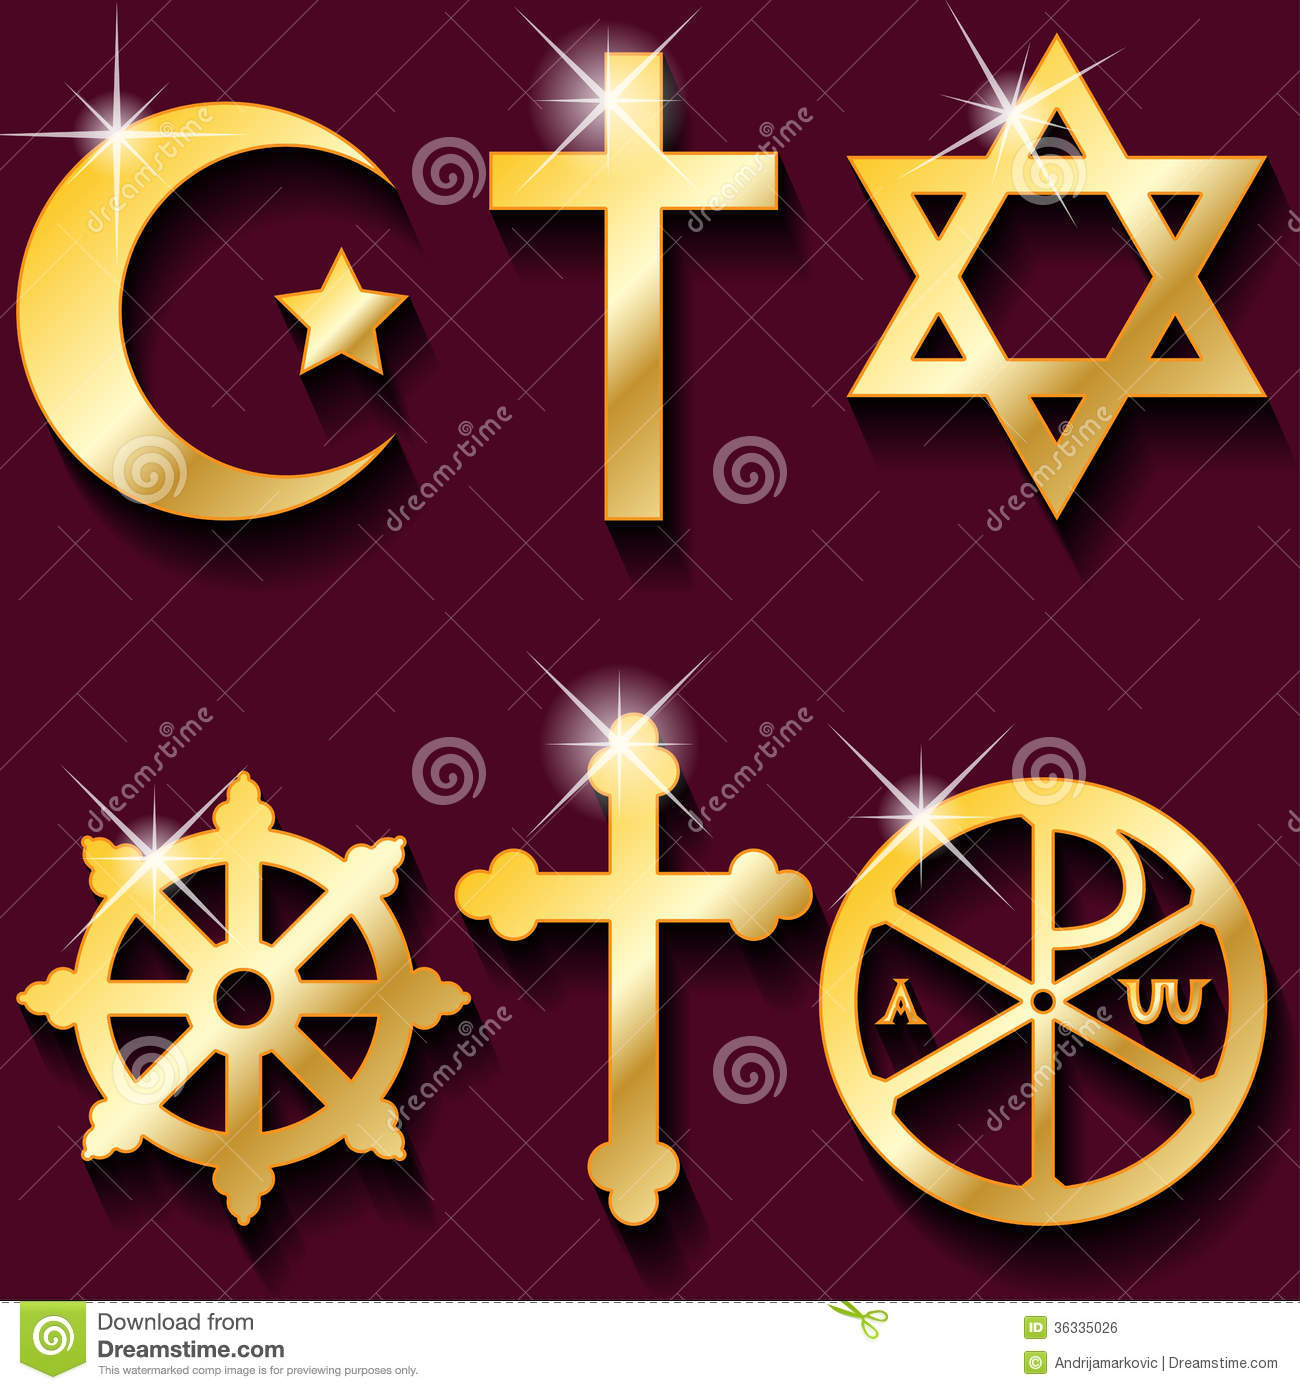 Religious symbols stock illustration illustration of freedom religious symbols royalty free stock image buycottarizona